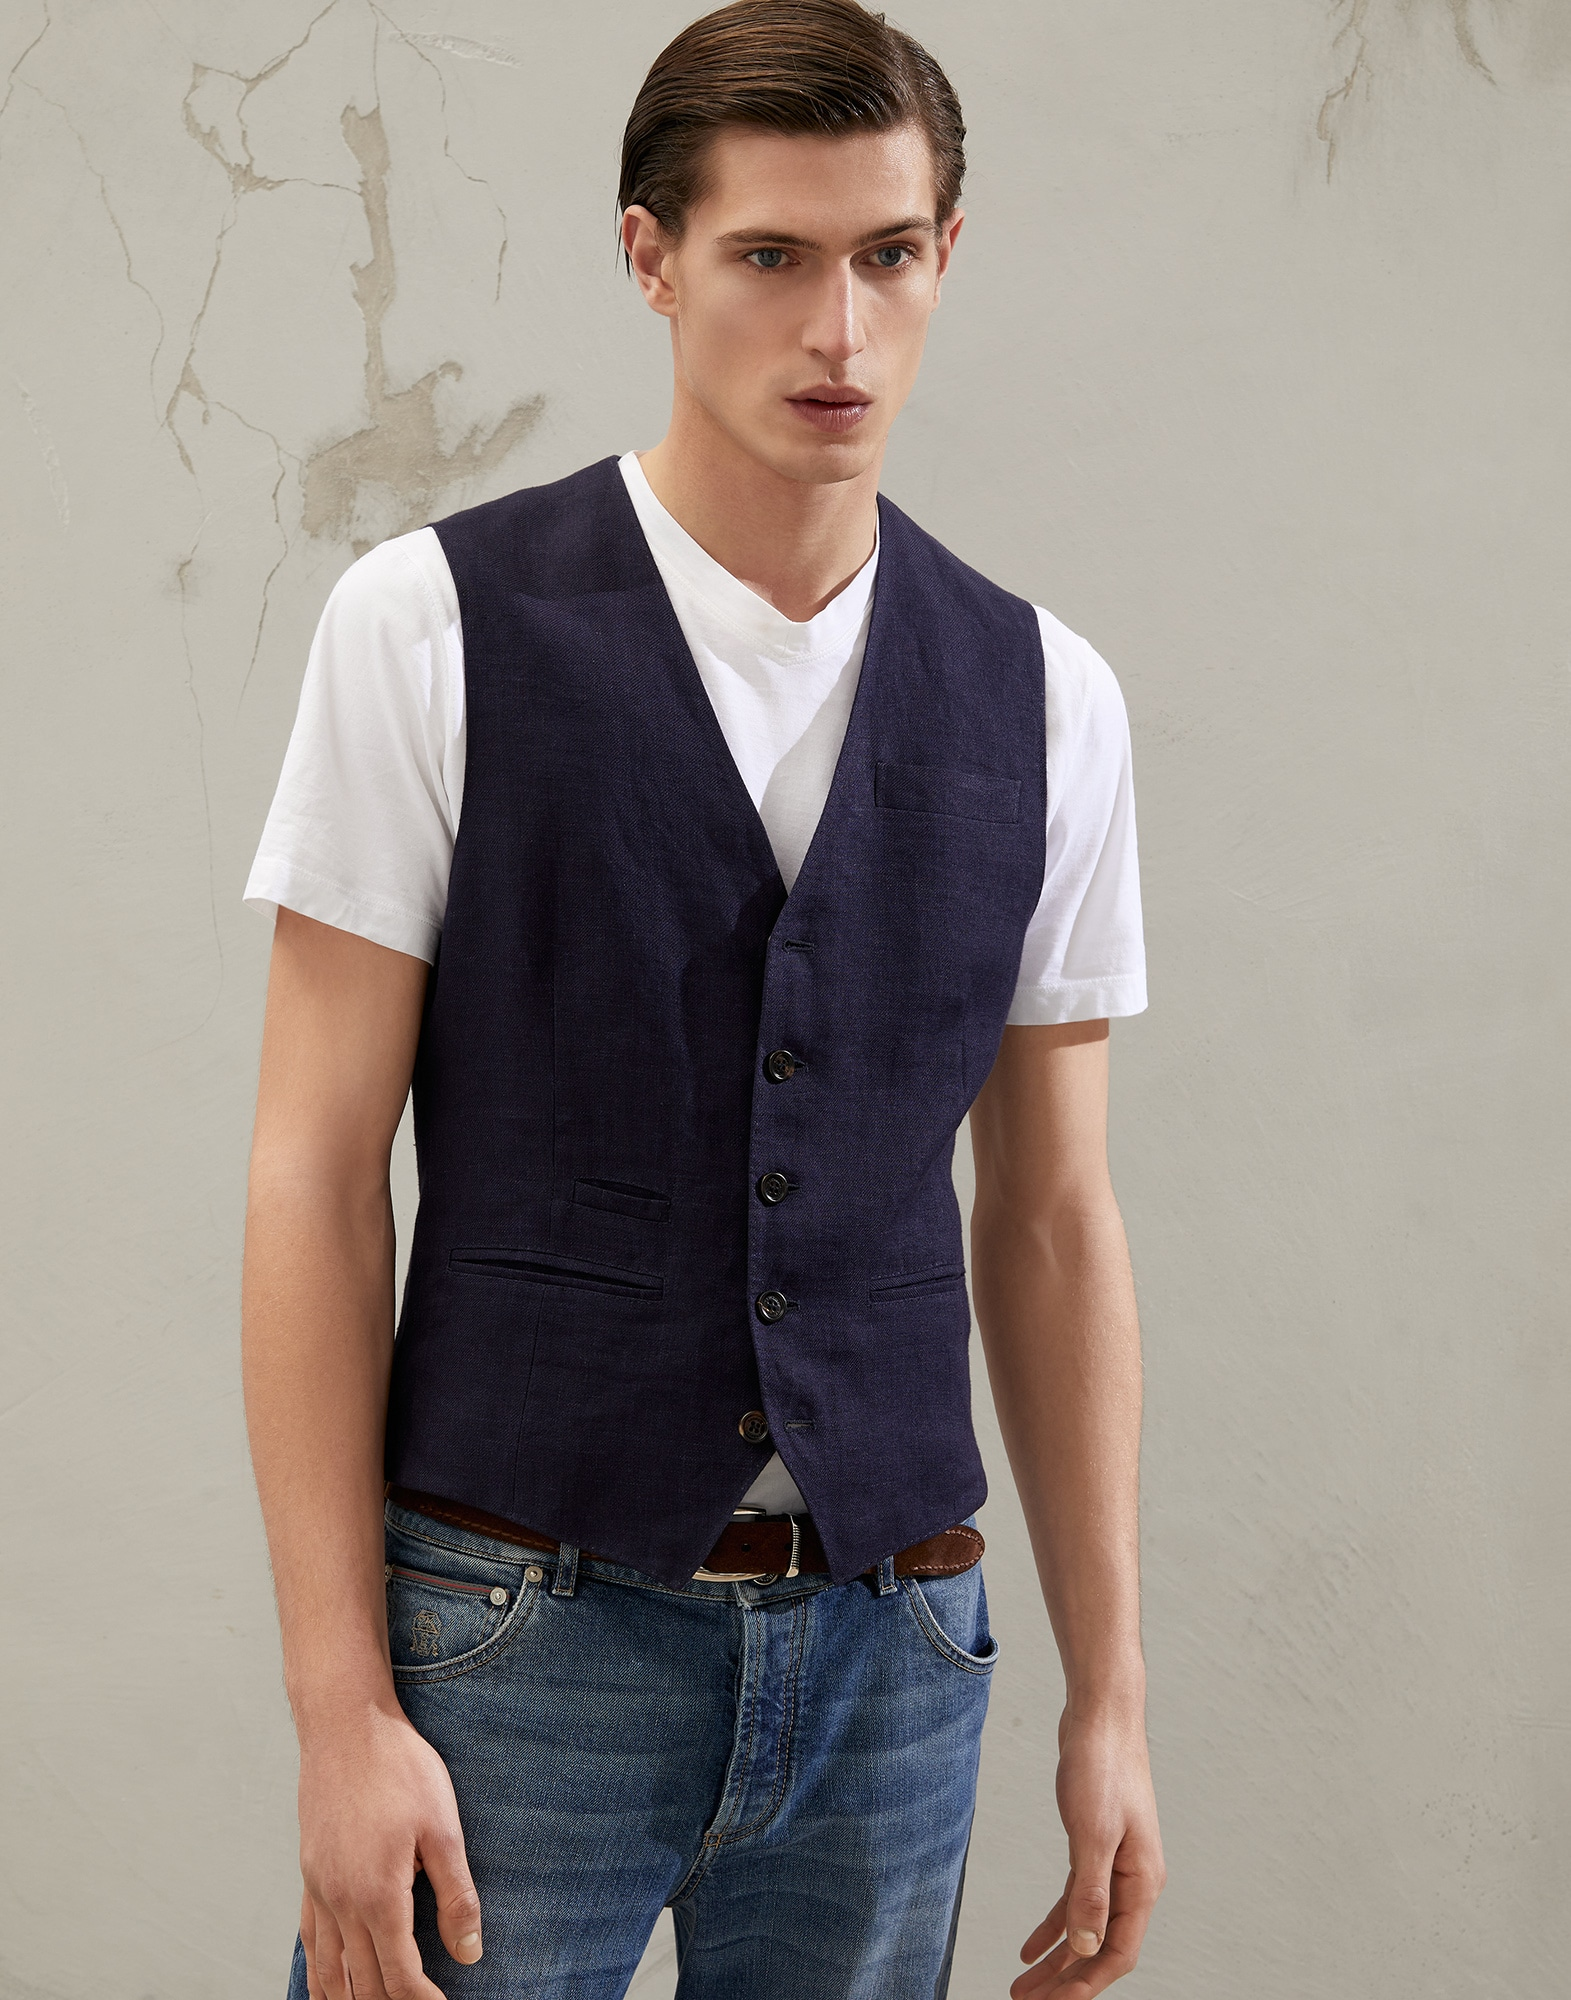 Waistcoat - Front view